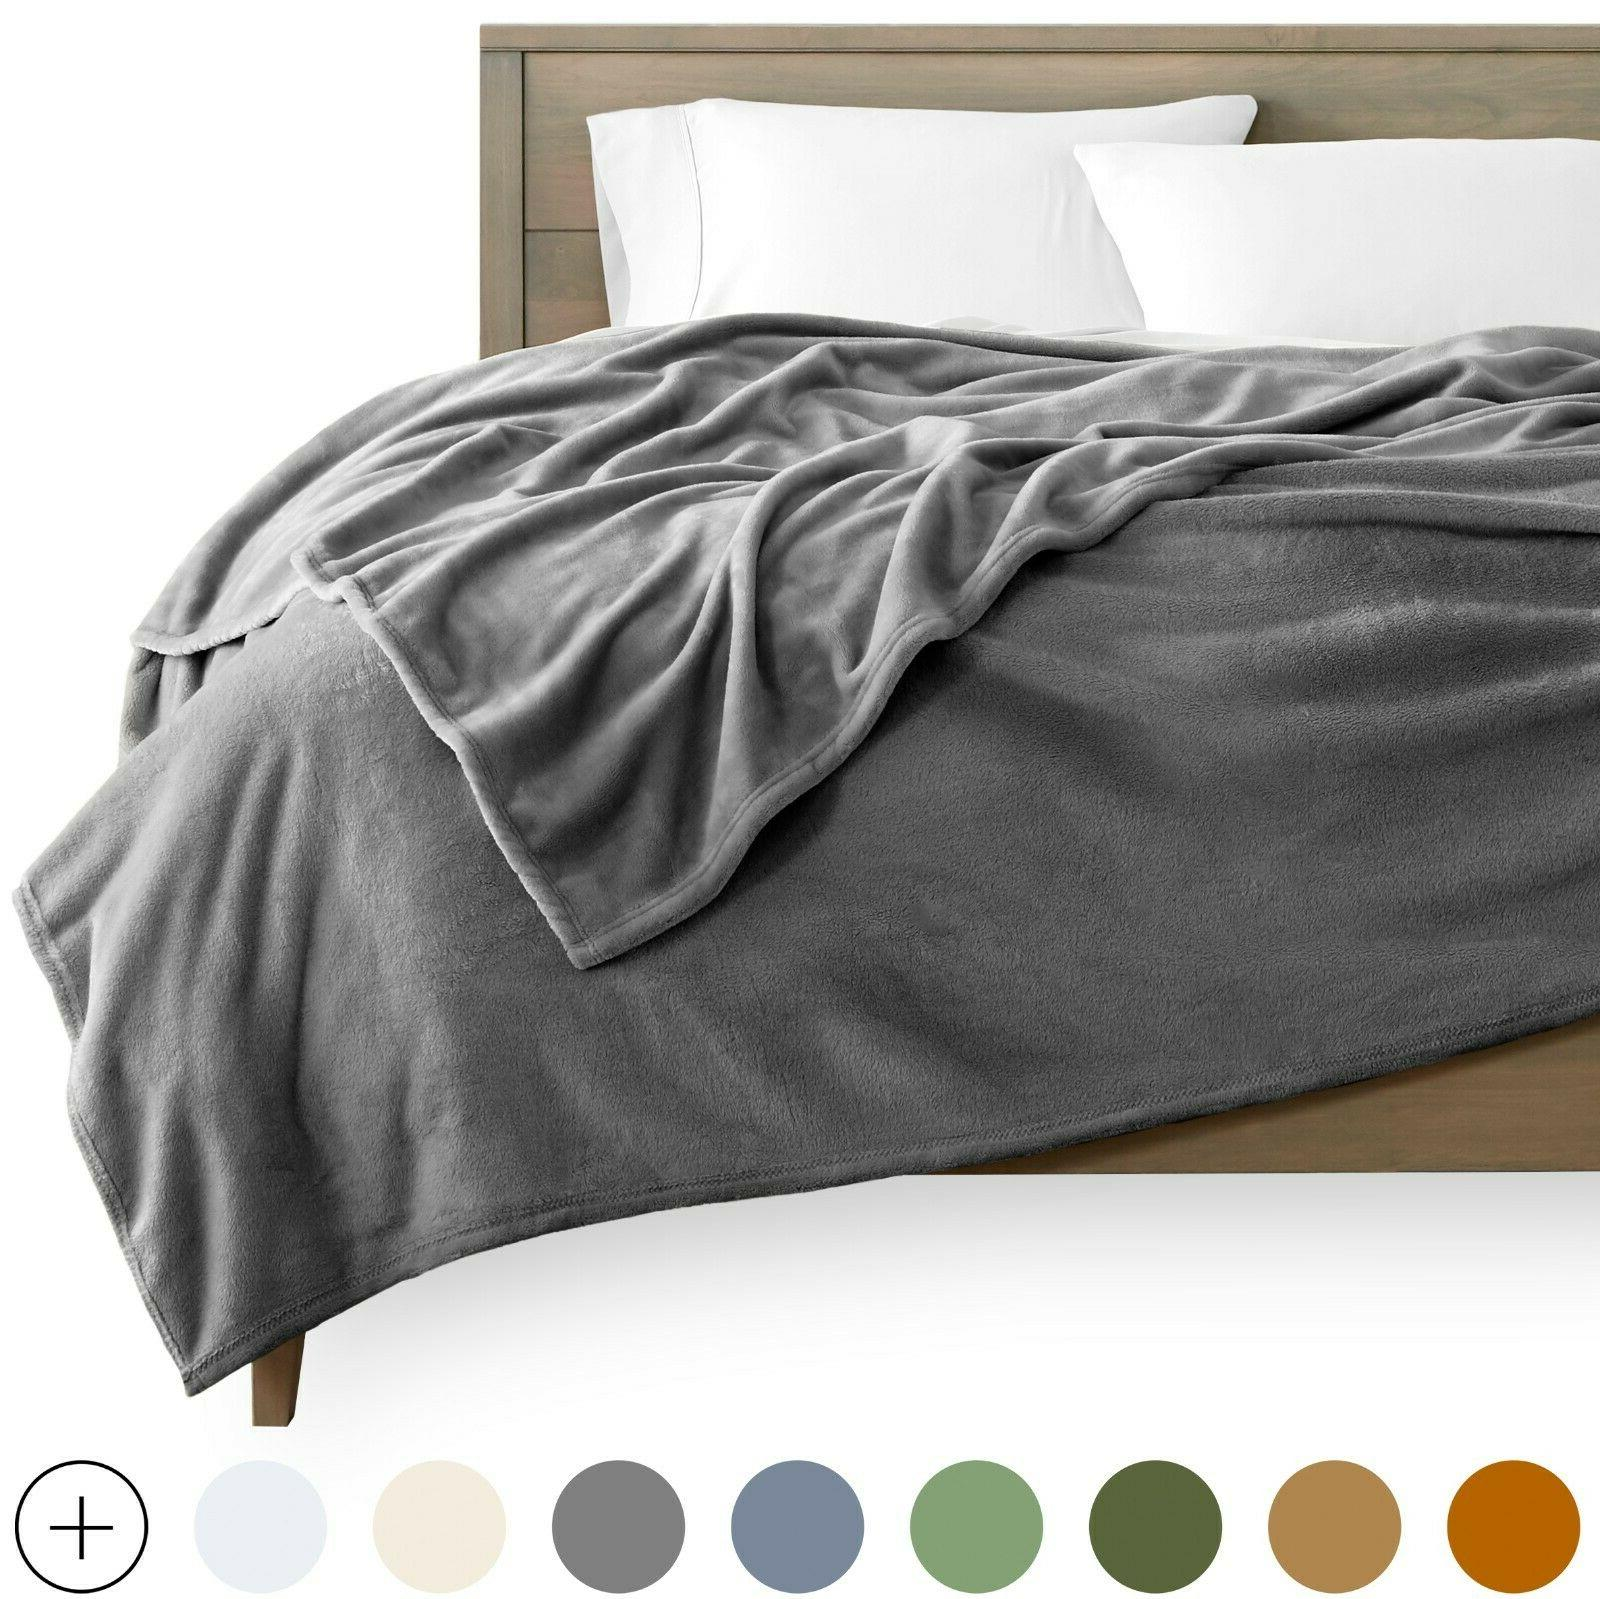 microplush velvet fleece blanket premium ultra soft